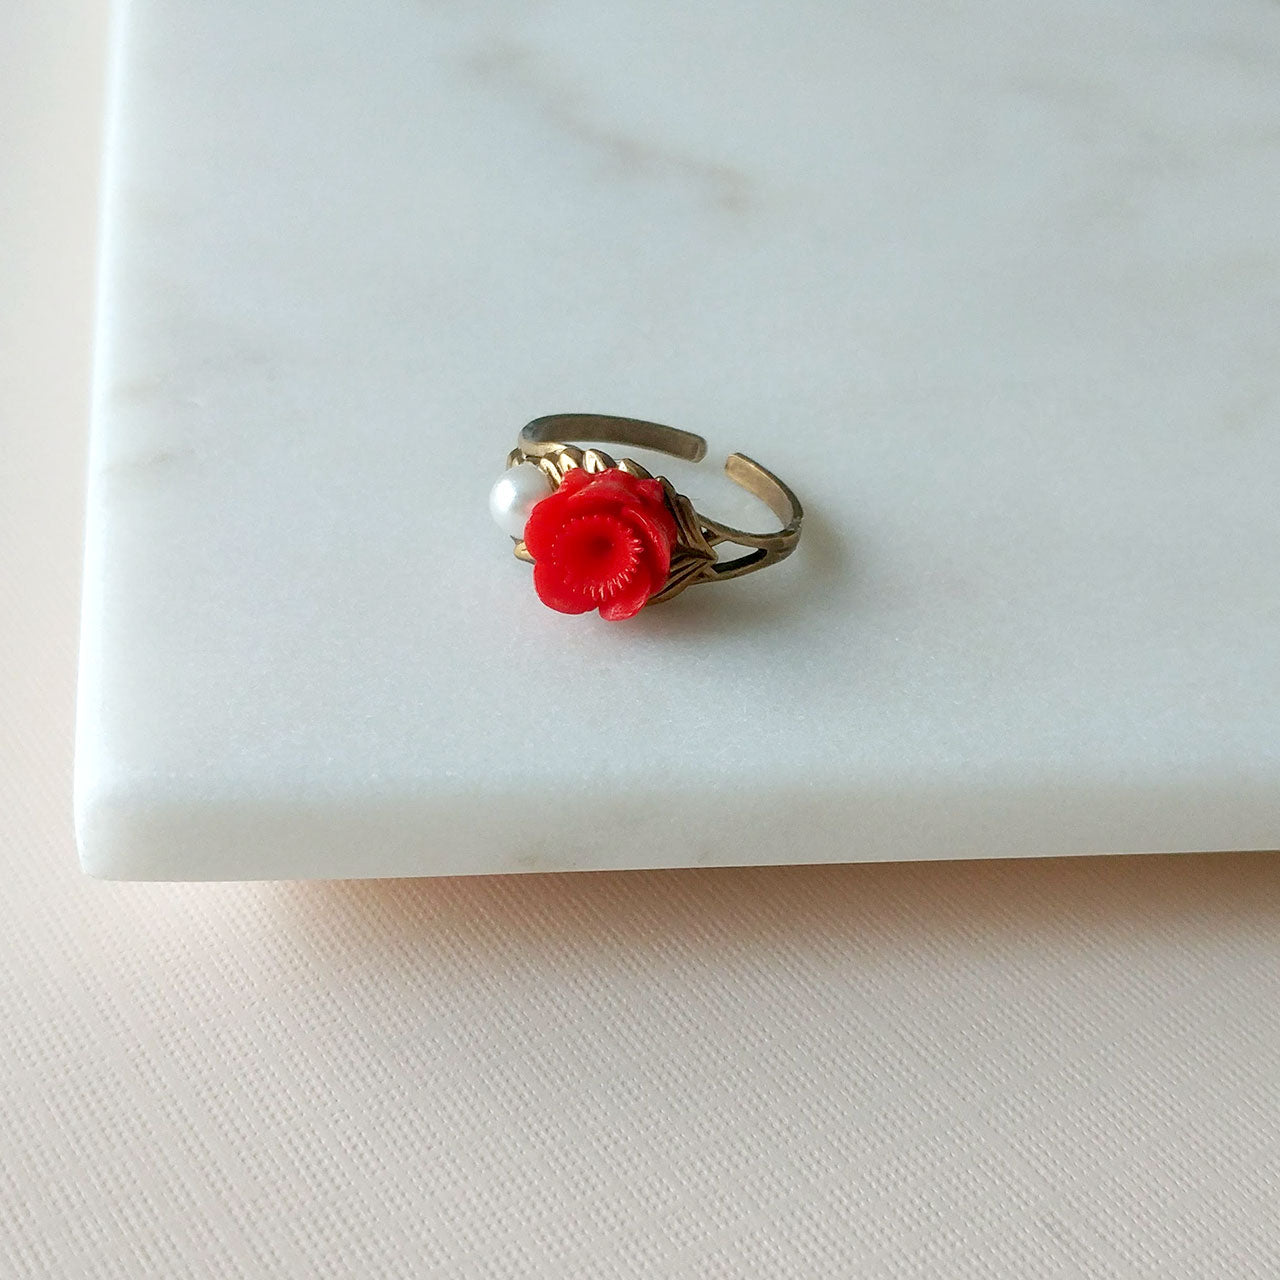 Sakura ring in cherry red (SD1367)